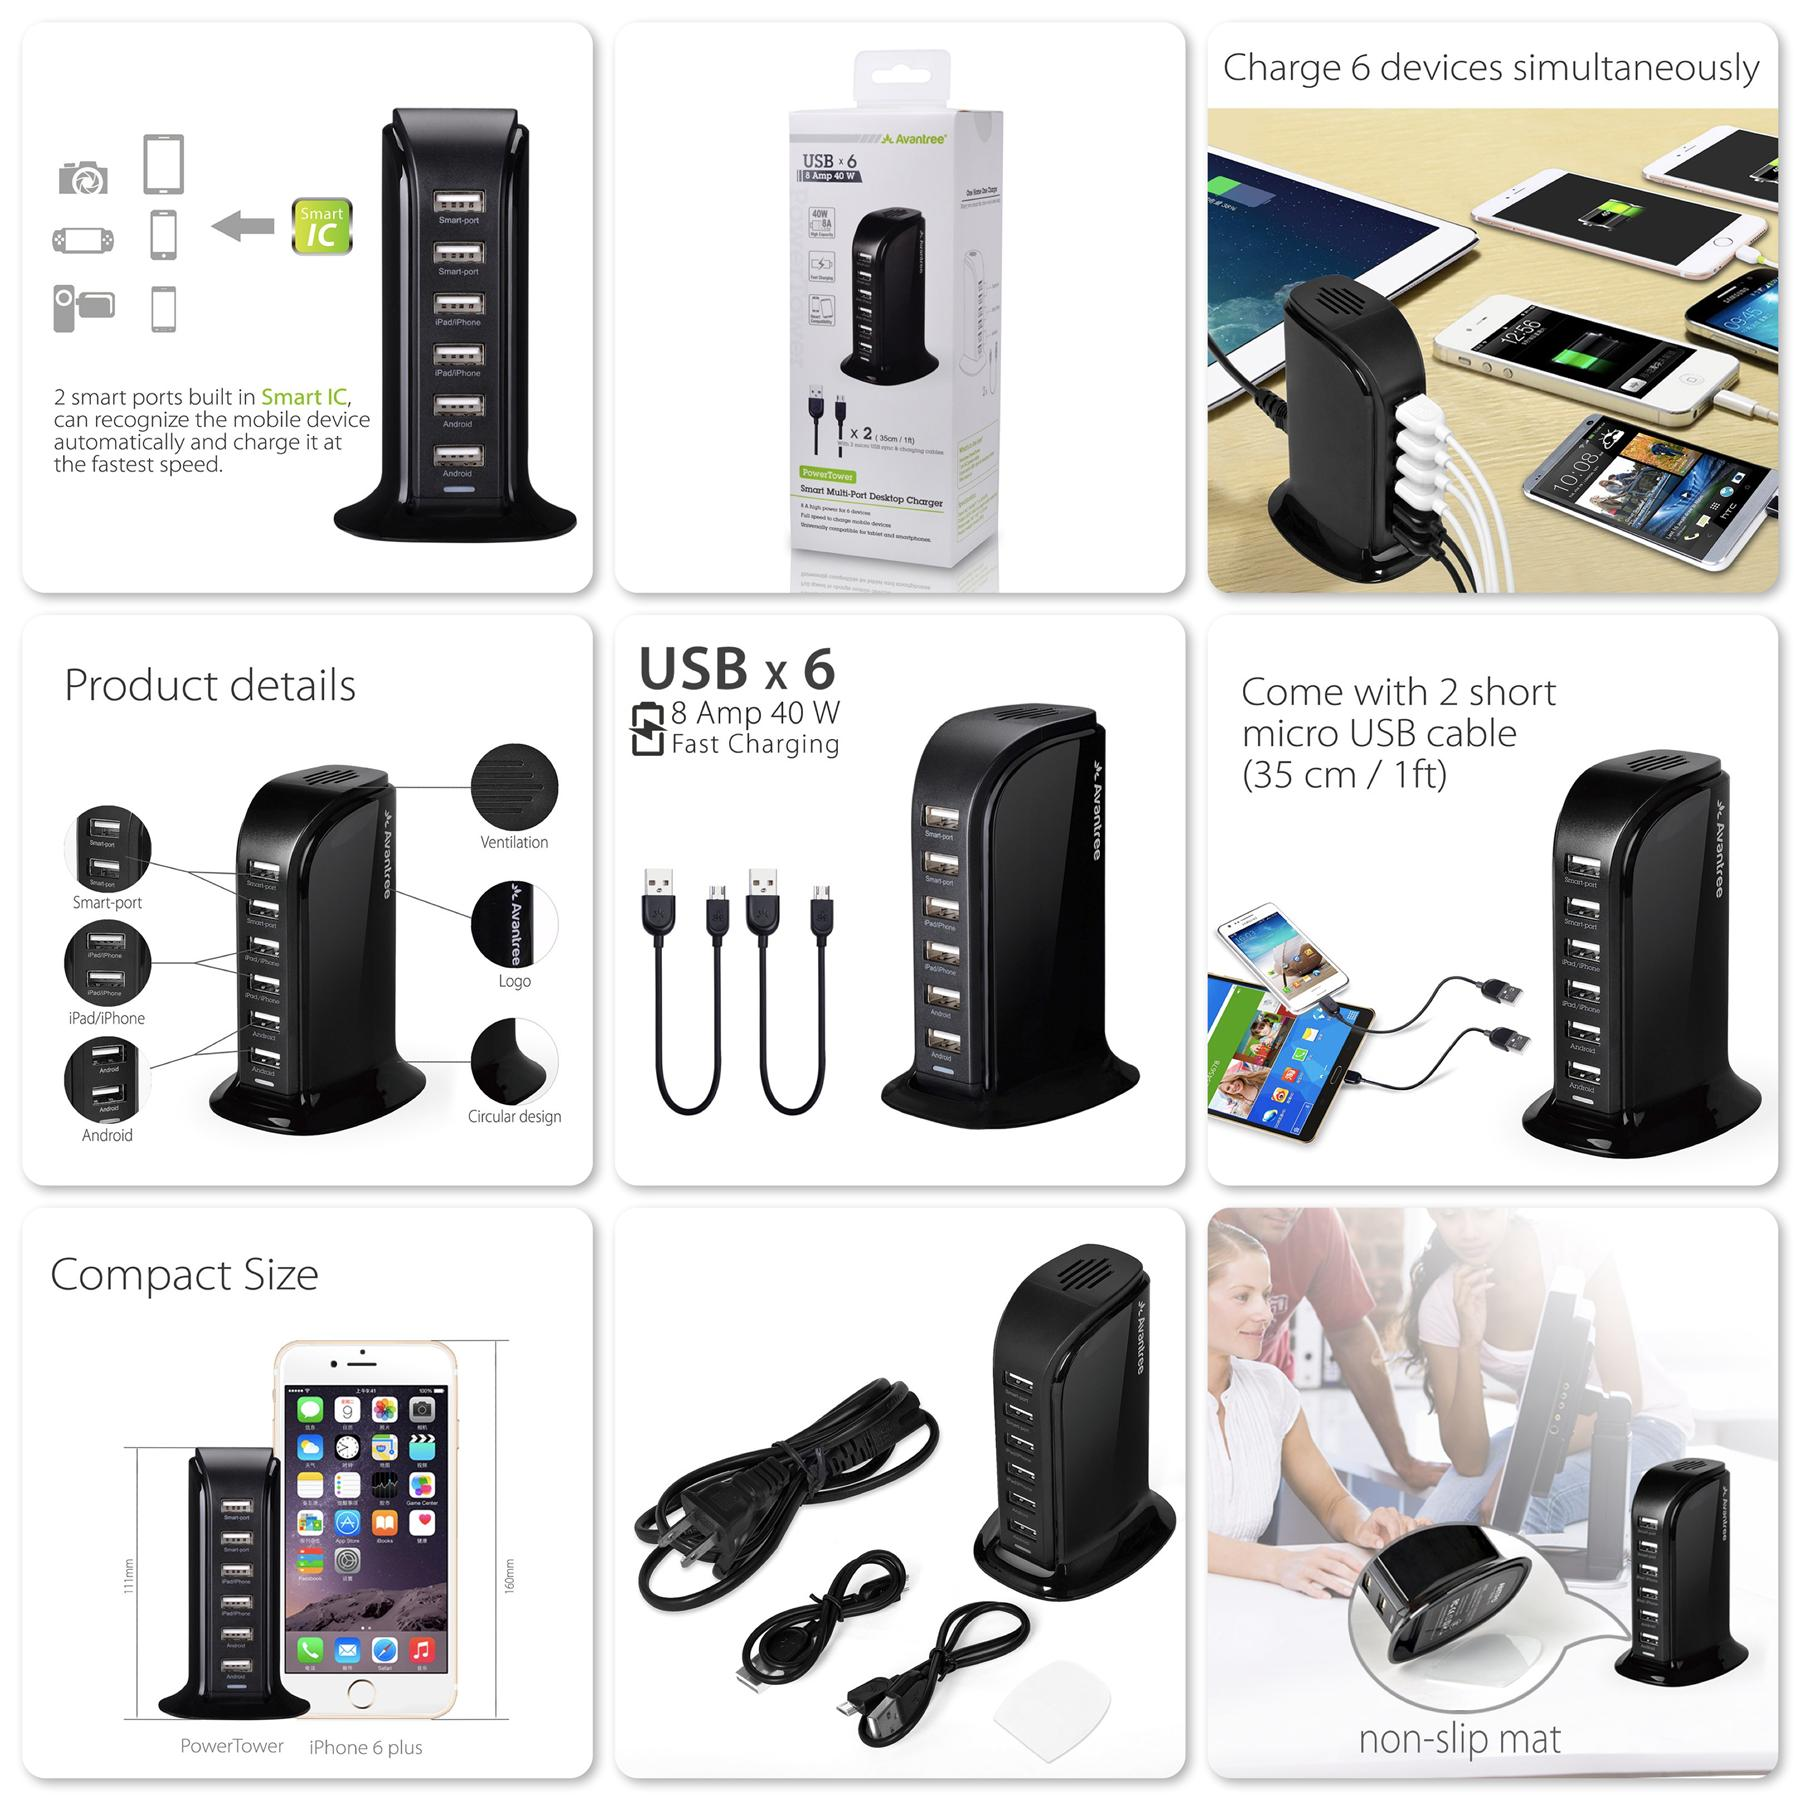 Bdotcom = Avantree PowerTower 6 ports Desktop USB Charging Stand